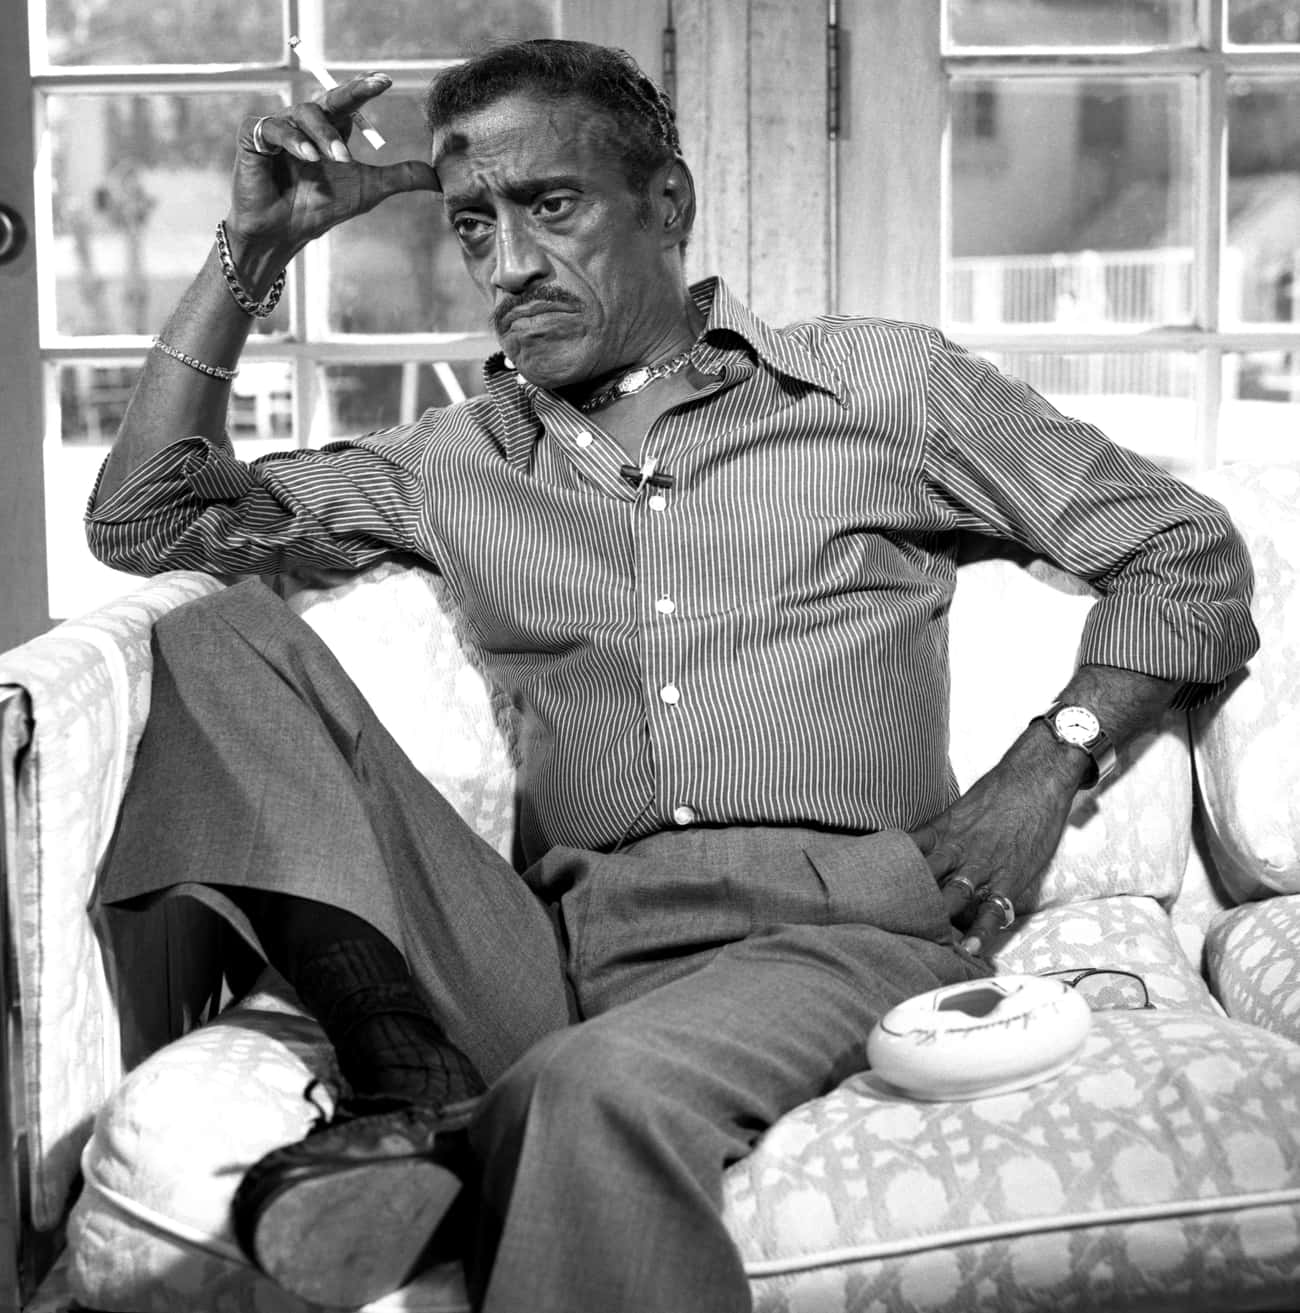 Sammy Davis, Jr. is listed (or ranked) 4 on the list Famous People Who Died of Throat Cancer